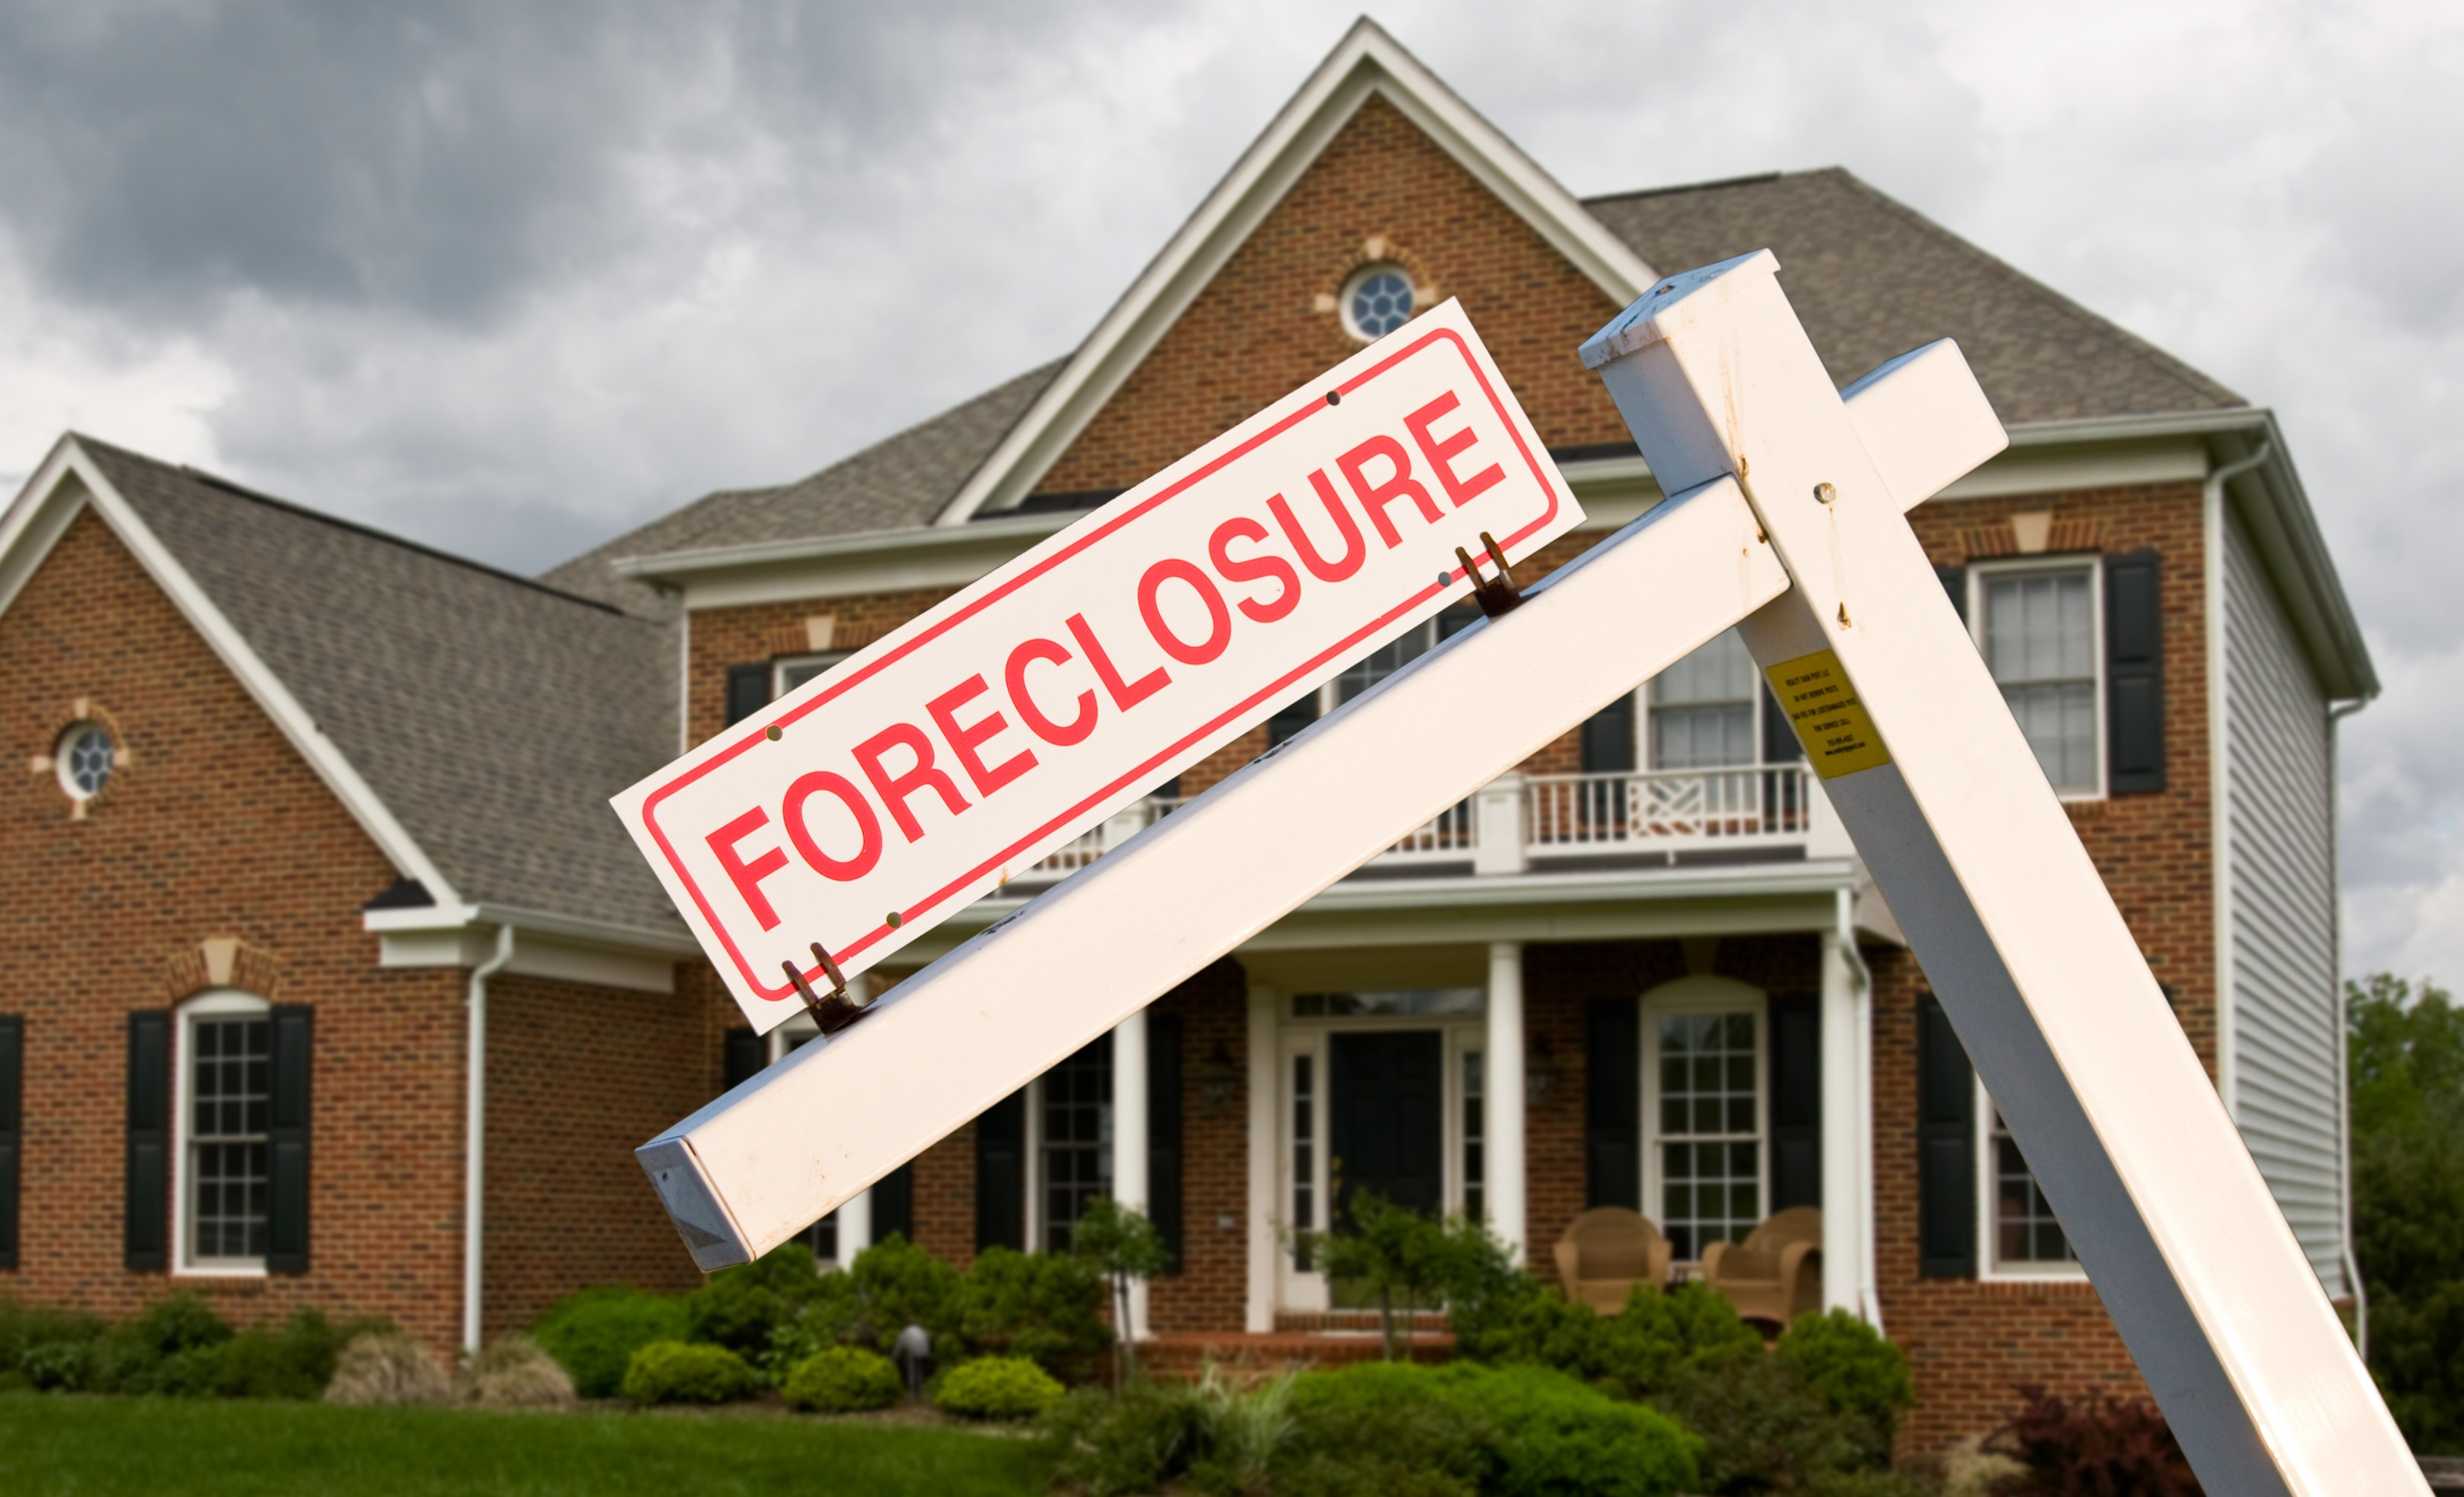 Foreclosure Epidemic Heightens Amidst COVID-19 Pandemic